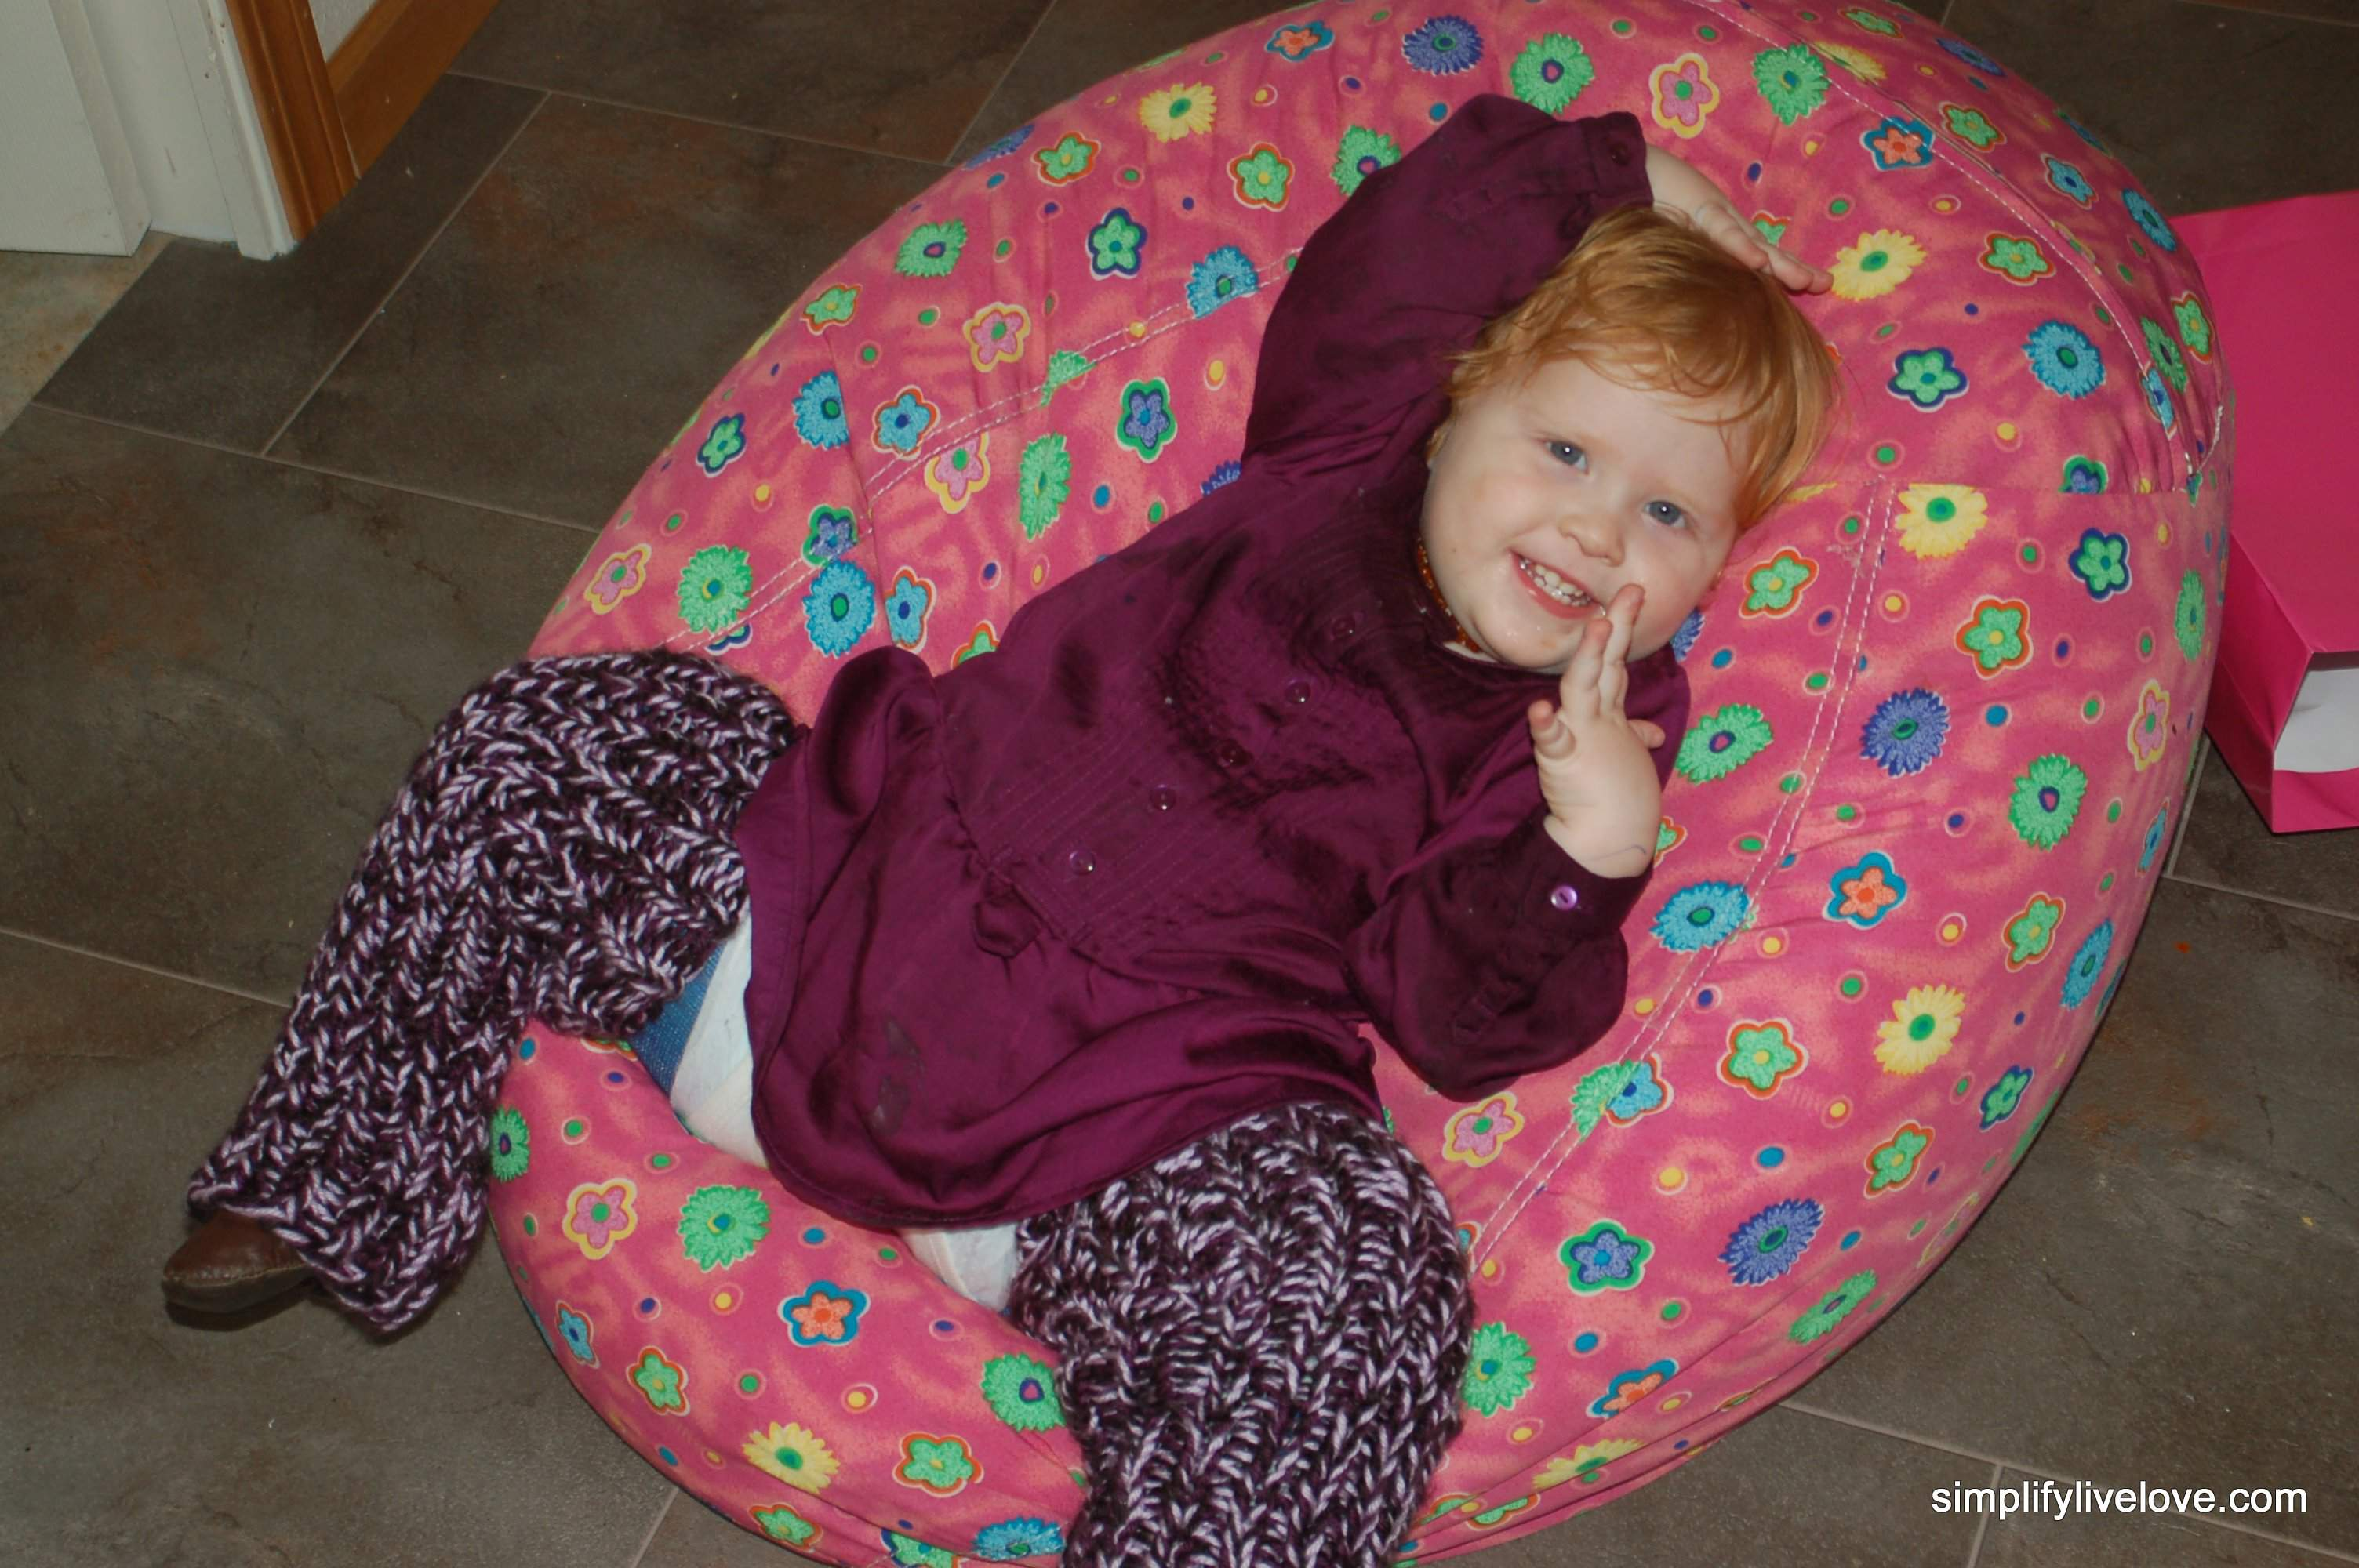 giril in spica cast on bean bag chair